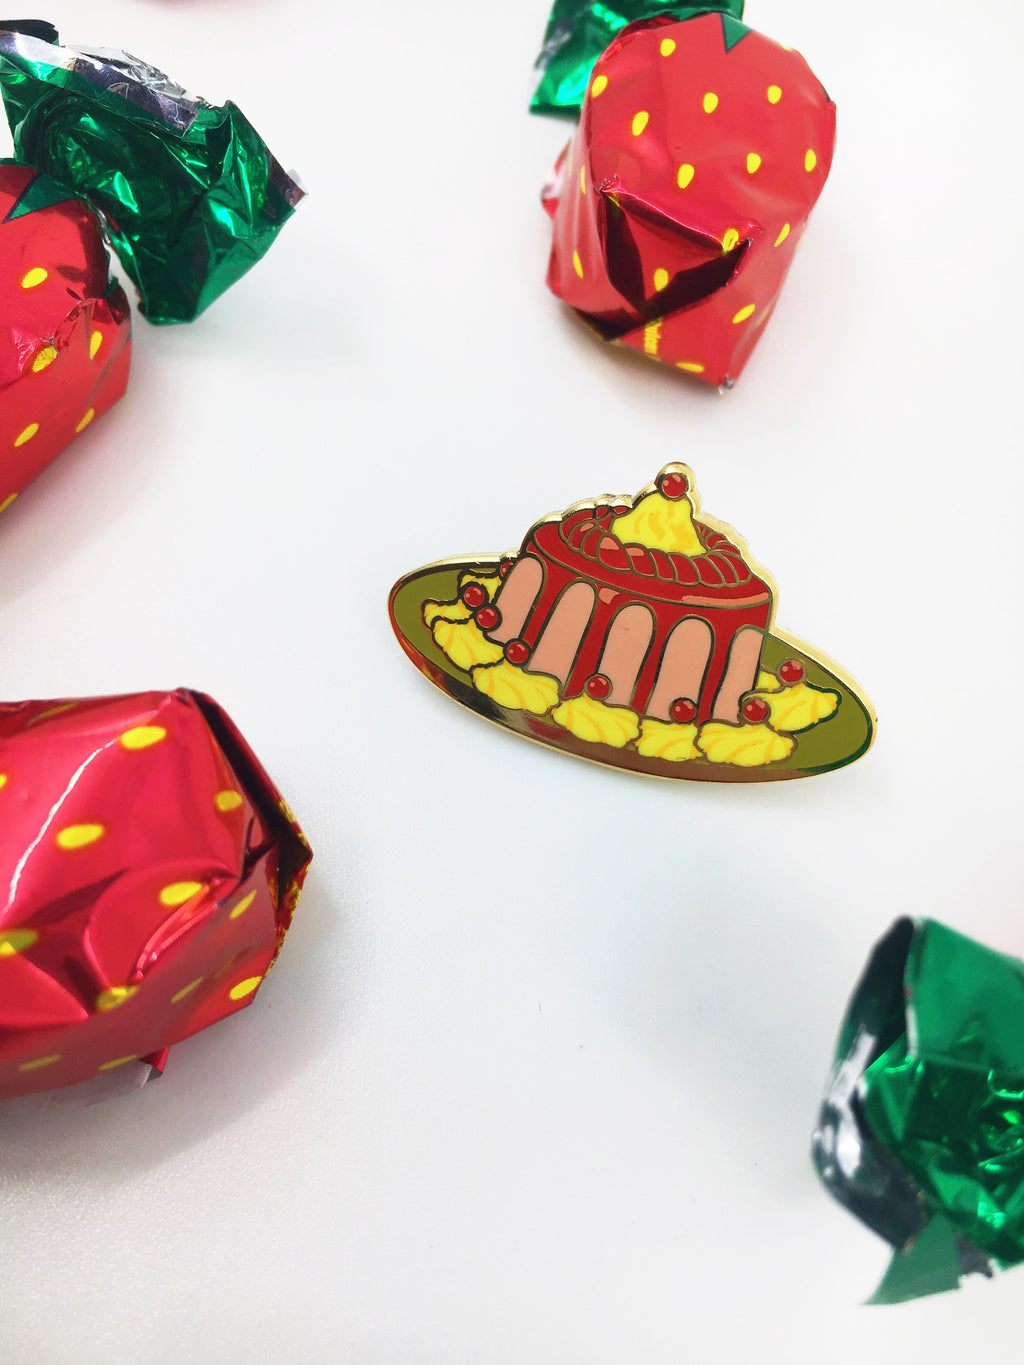 Jell-o Mold - Lapel Pin